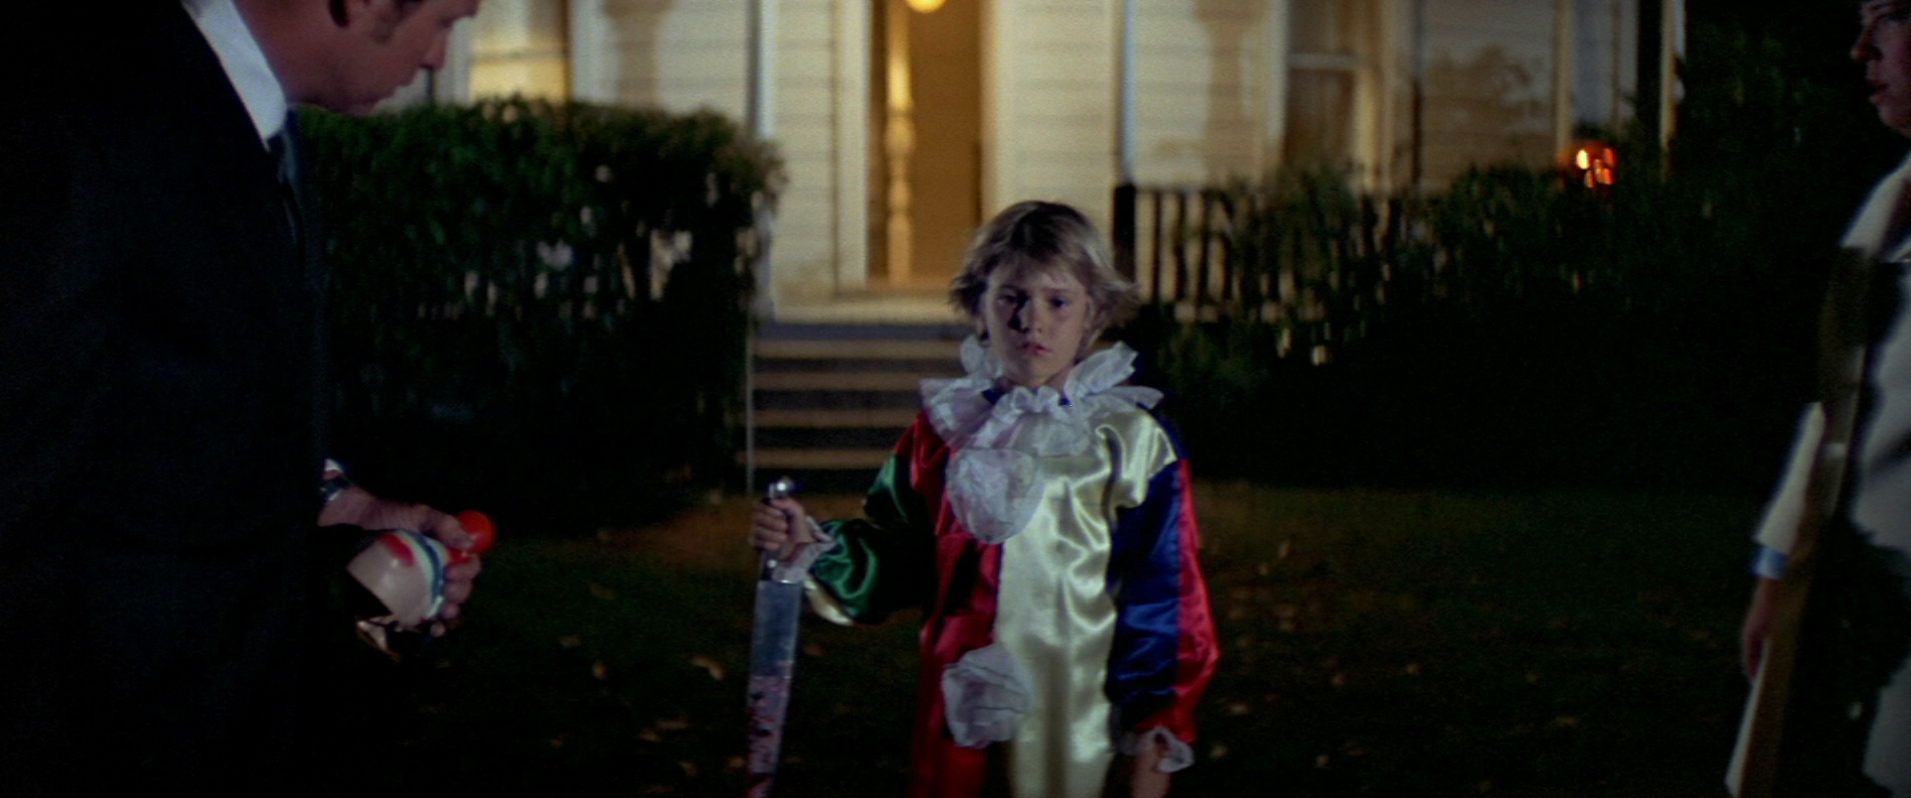 A Horror Newbie Watches Halloween For the First Time